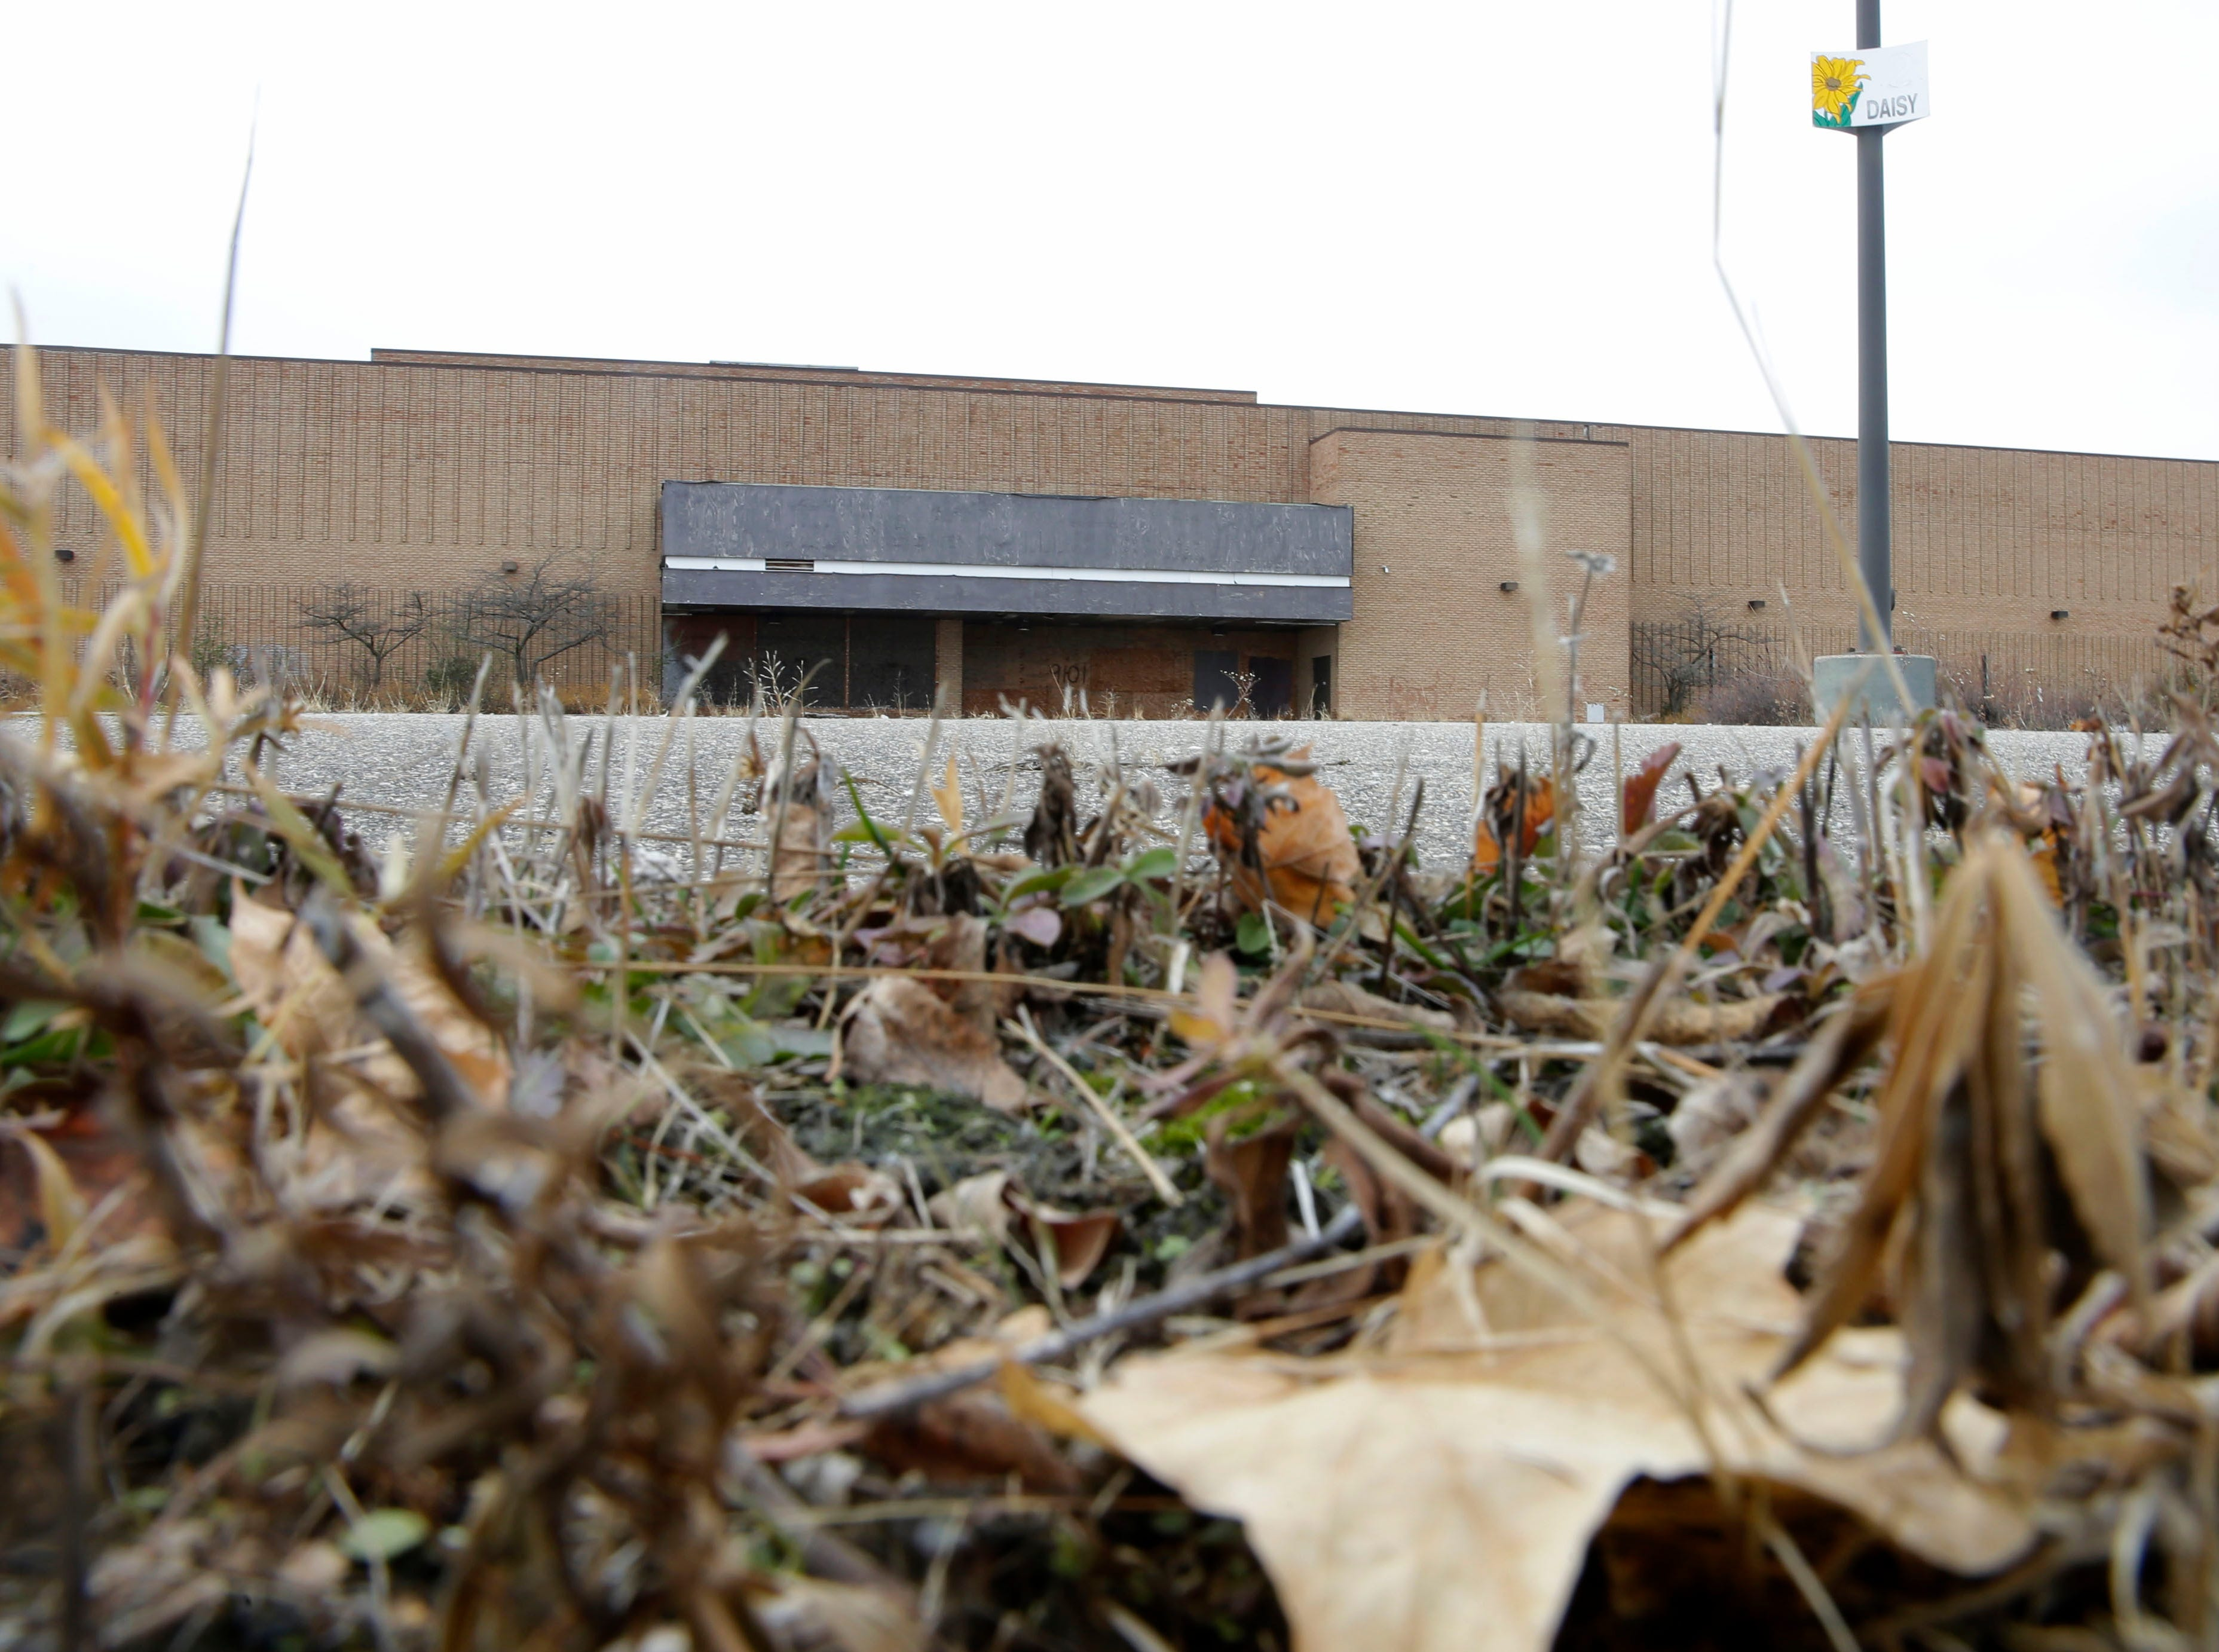 November 2017: Weeds grow in the empty parking lot of Milwaukee's former Northridge Mall on W. Brown Deer Road.